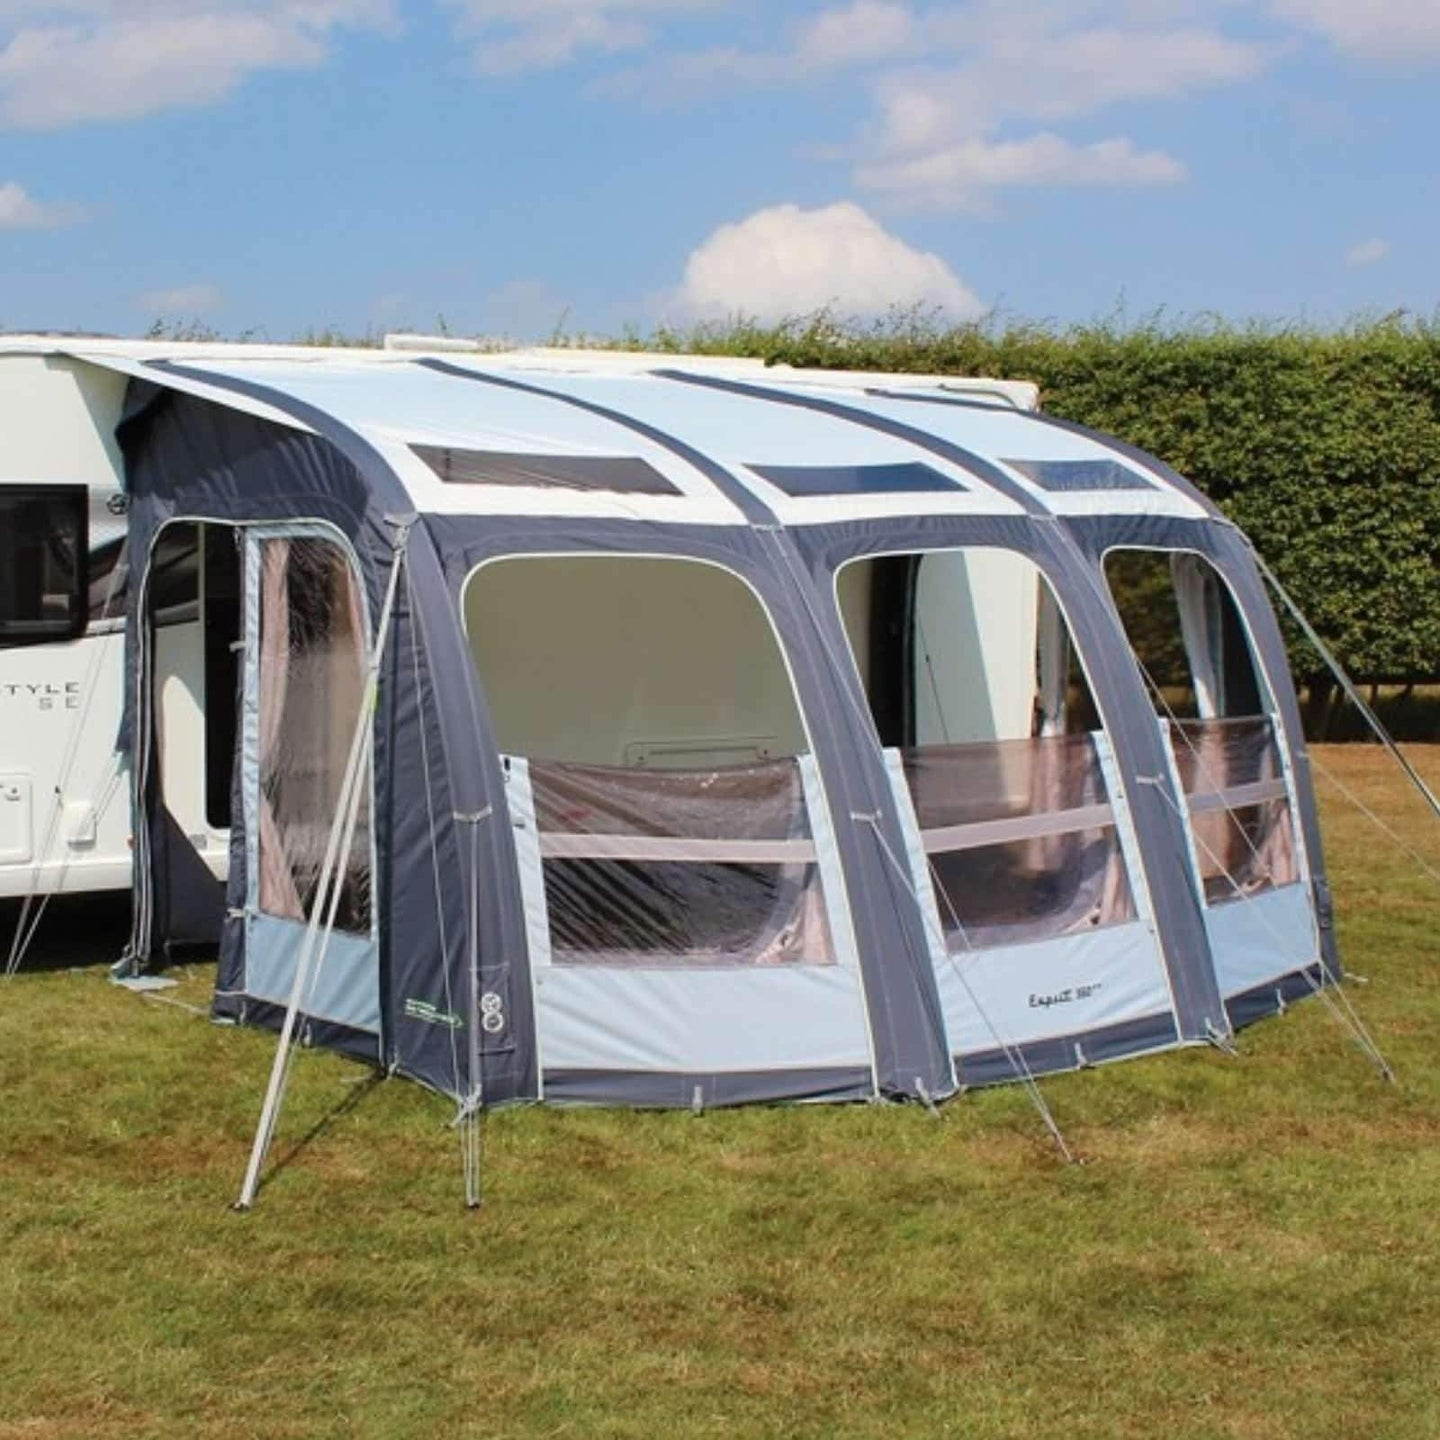 Outdoor Revolution Esprit 360 Pro S Inflatable Caravan Awning + Free Carpet (2019)